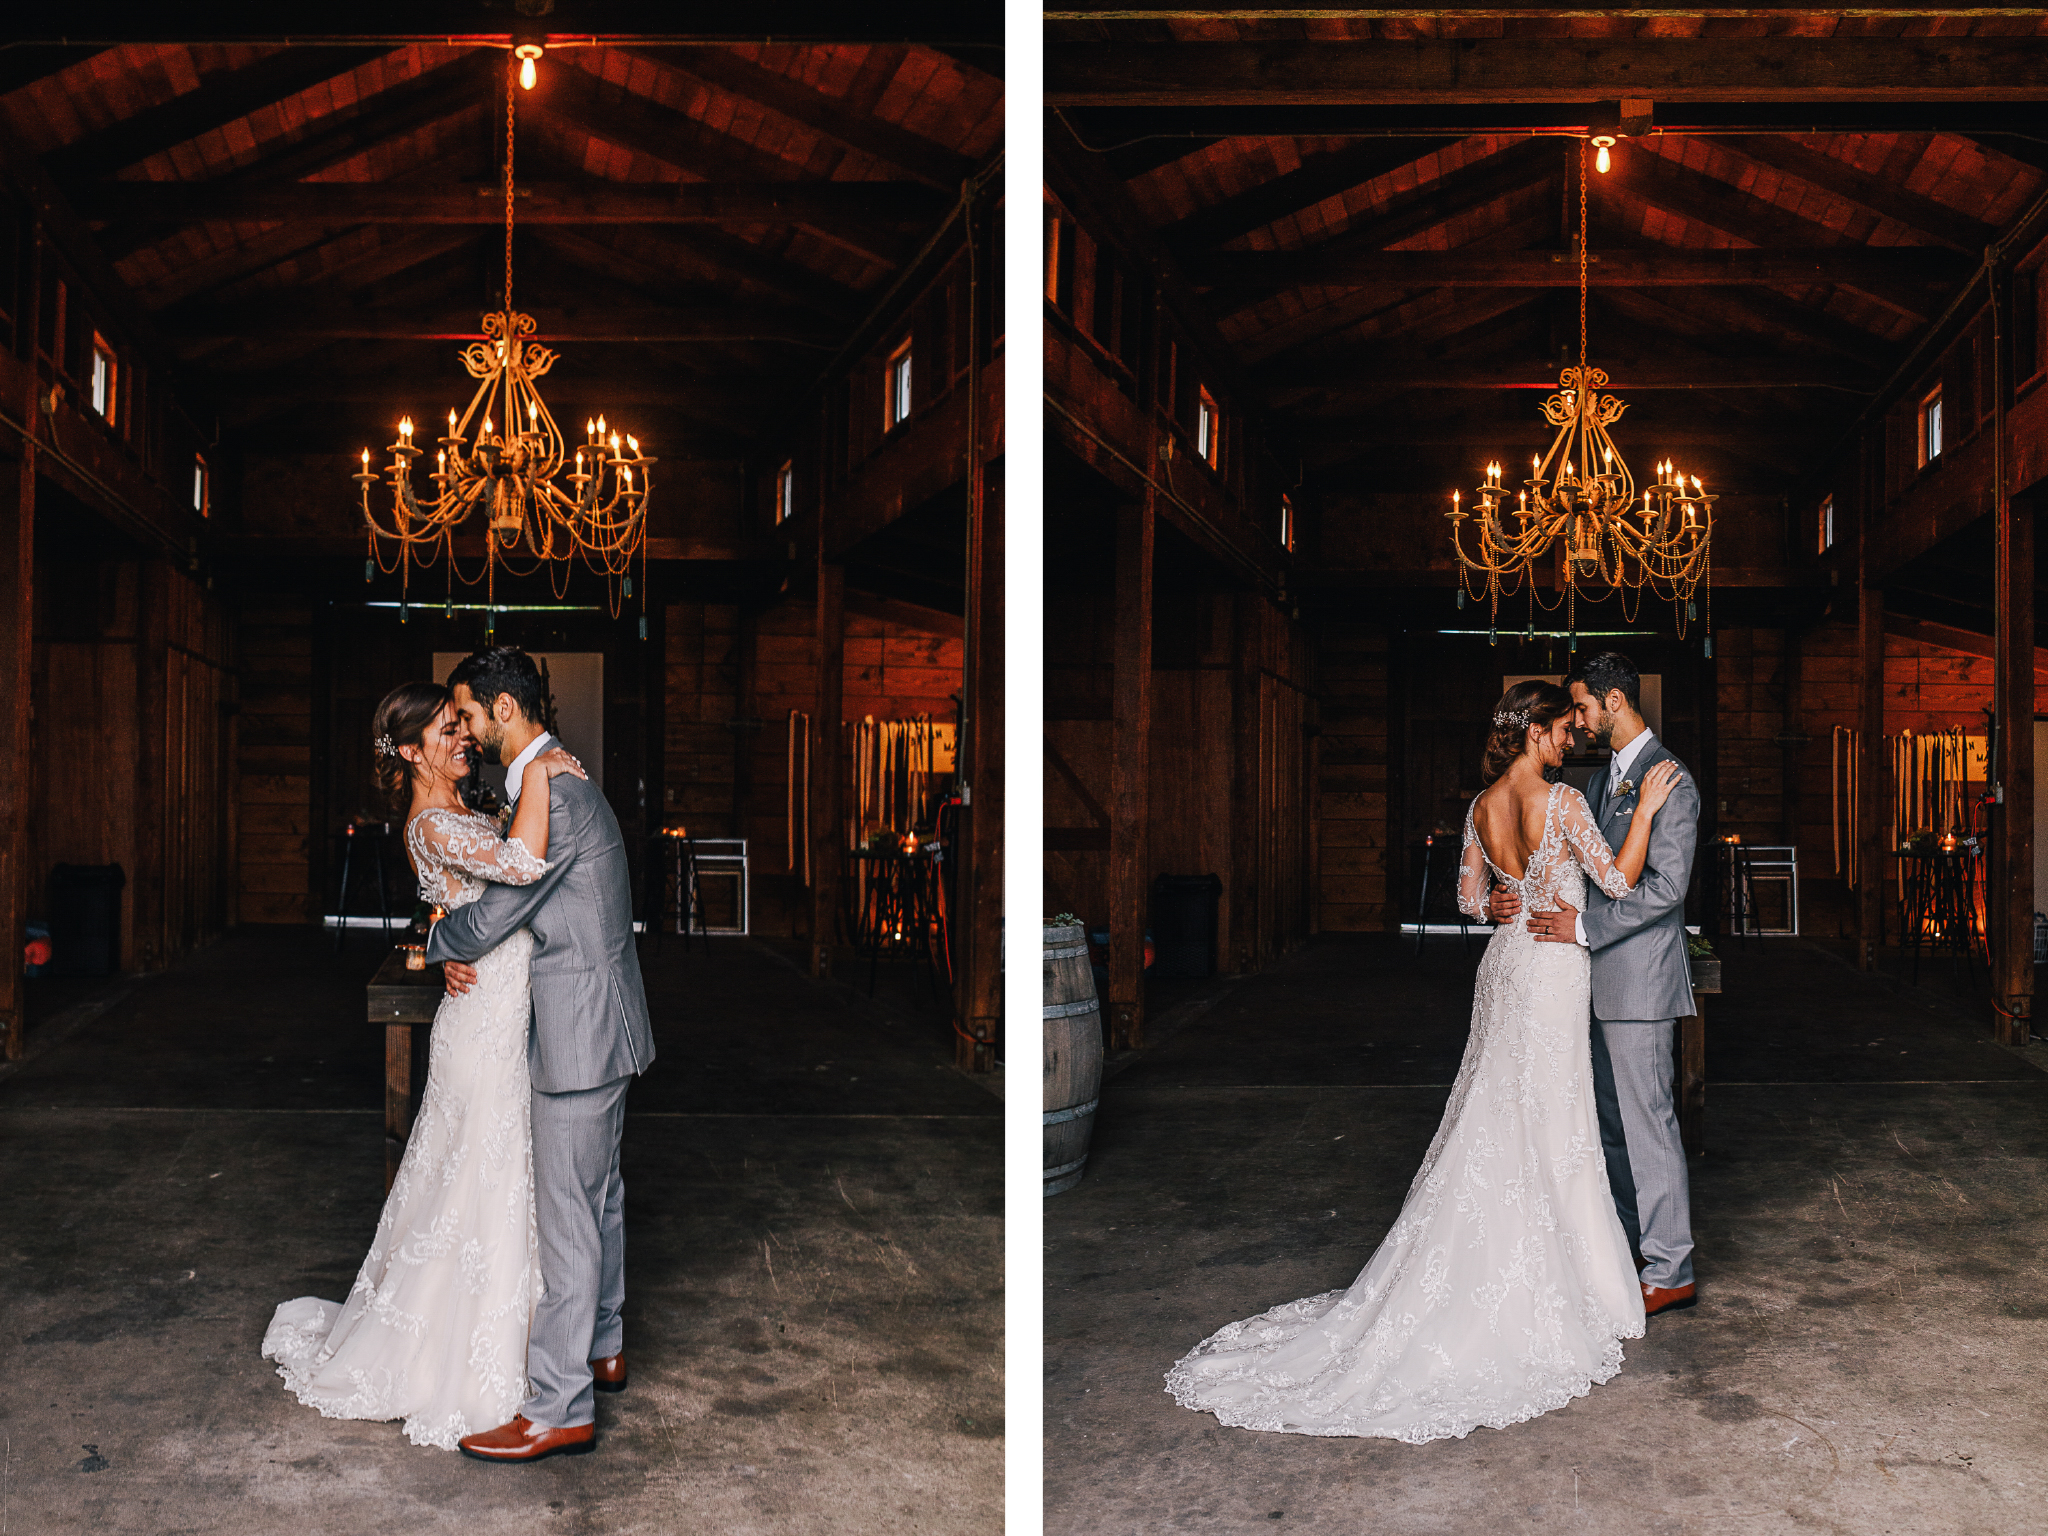 san diego wedding   photographer | collage of bride and groom standing in front of each other in   barn under chandelier